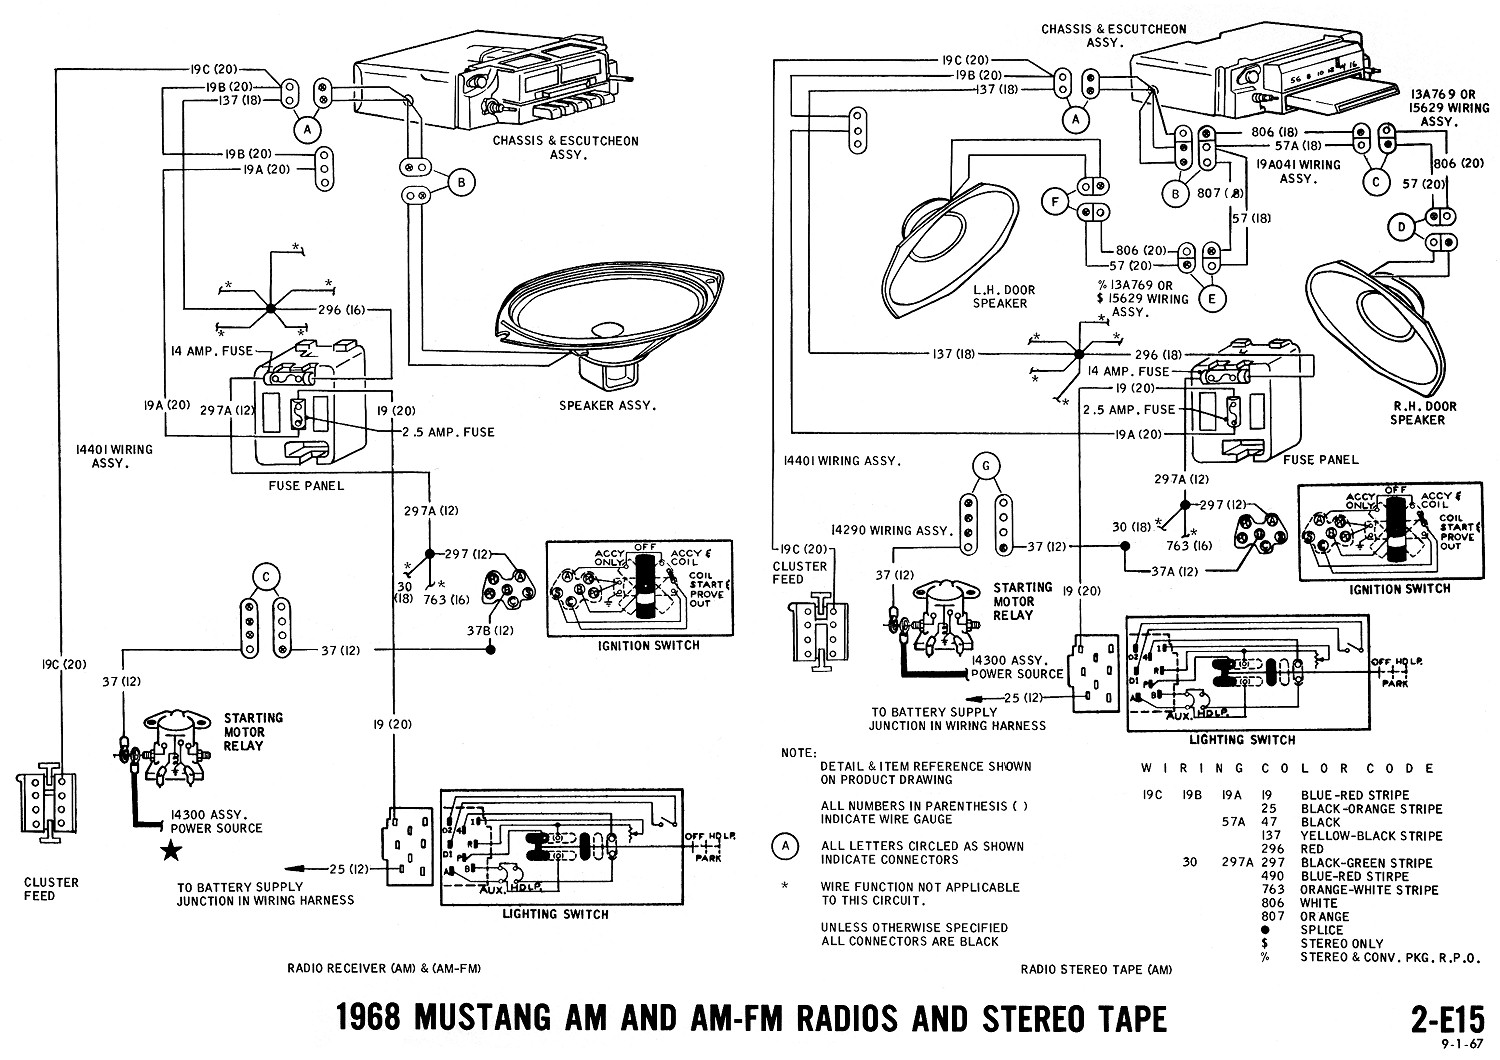 hino radio wiring diagram. hino. automotive wiring diagrams, Wiring diagram